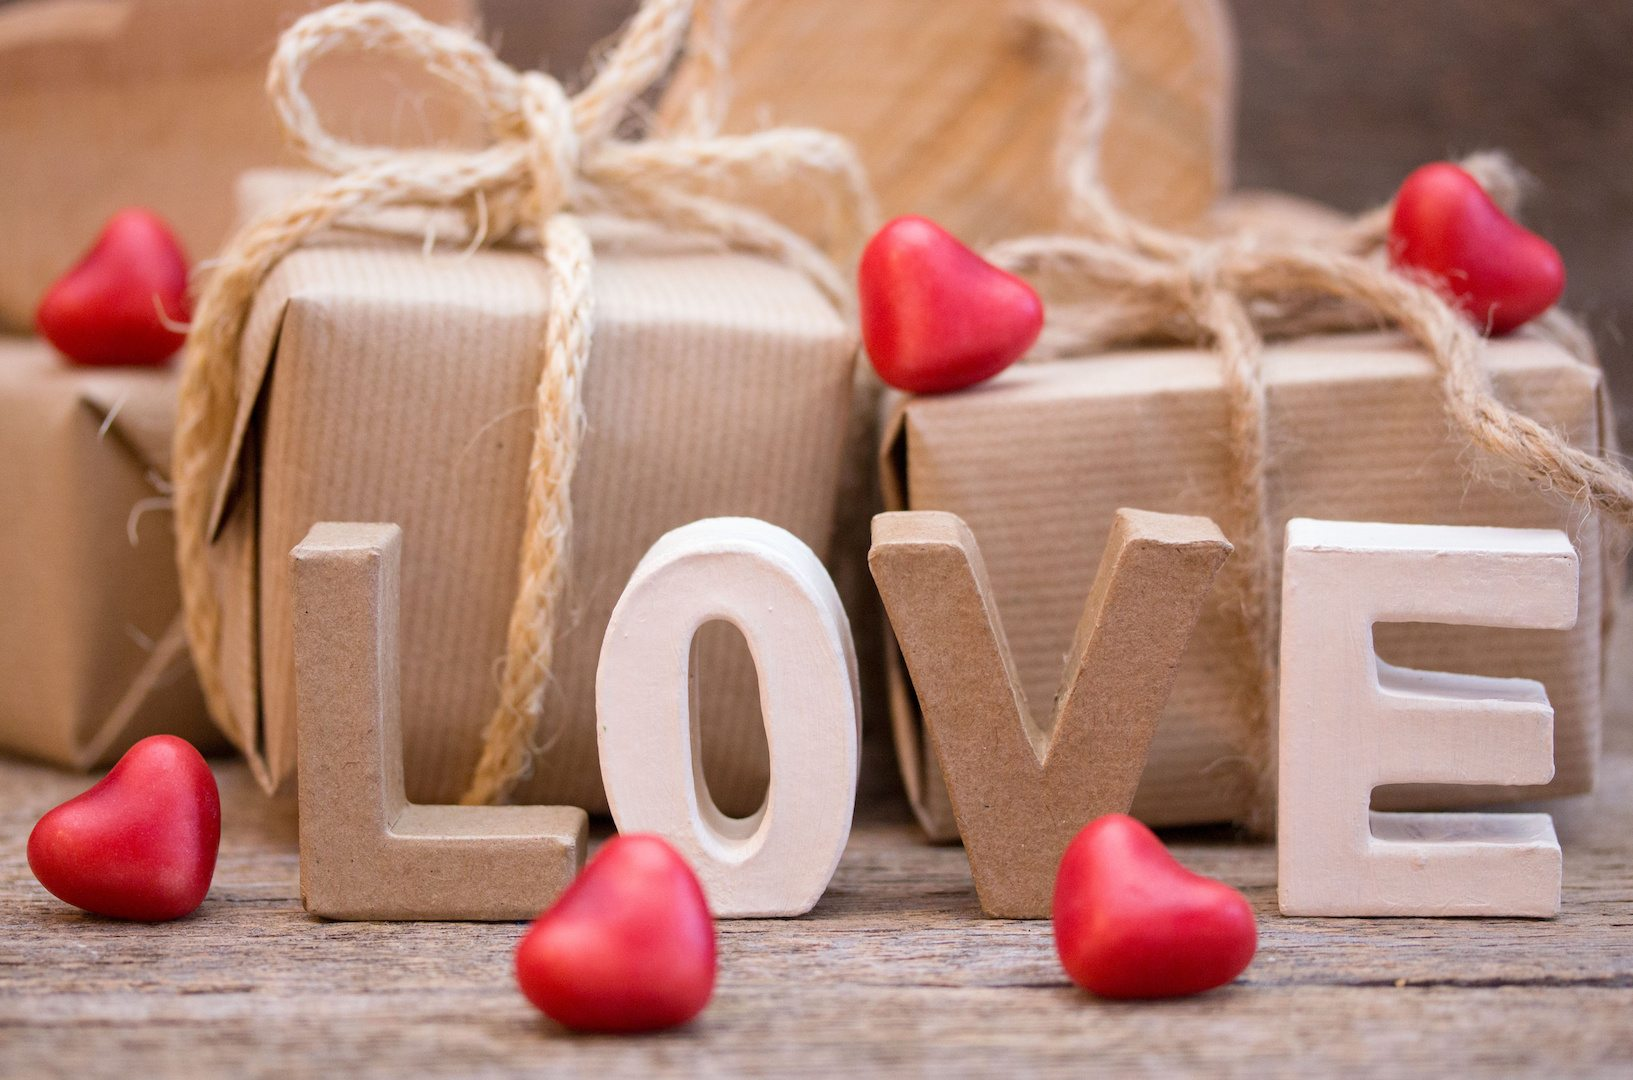 Wedding Gift Ideas Remarriage : Wedding Gifts That Invest in Marriages - Marriage Missions ...